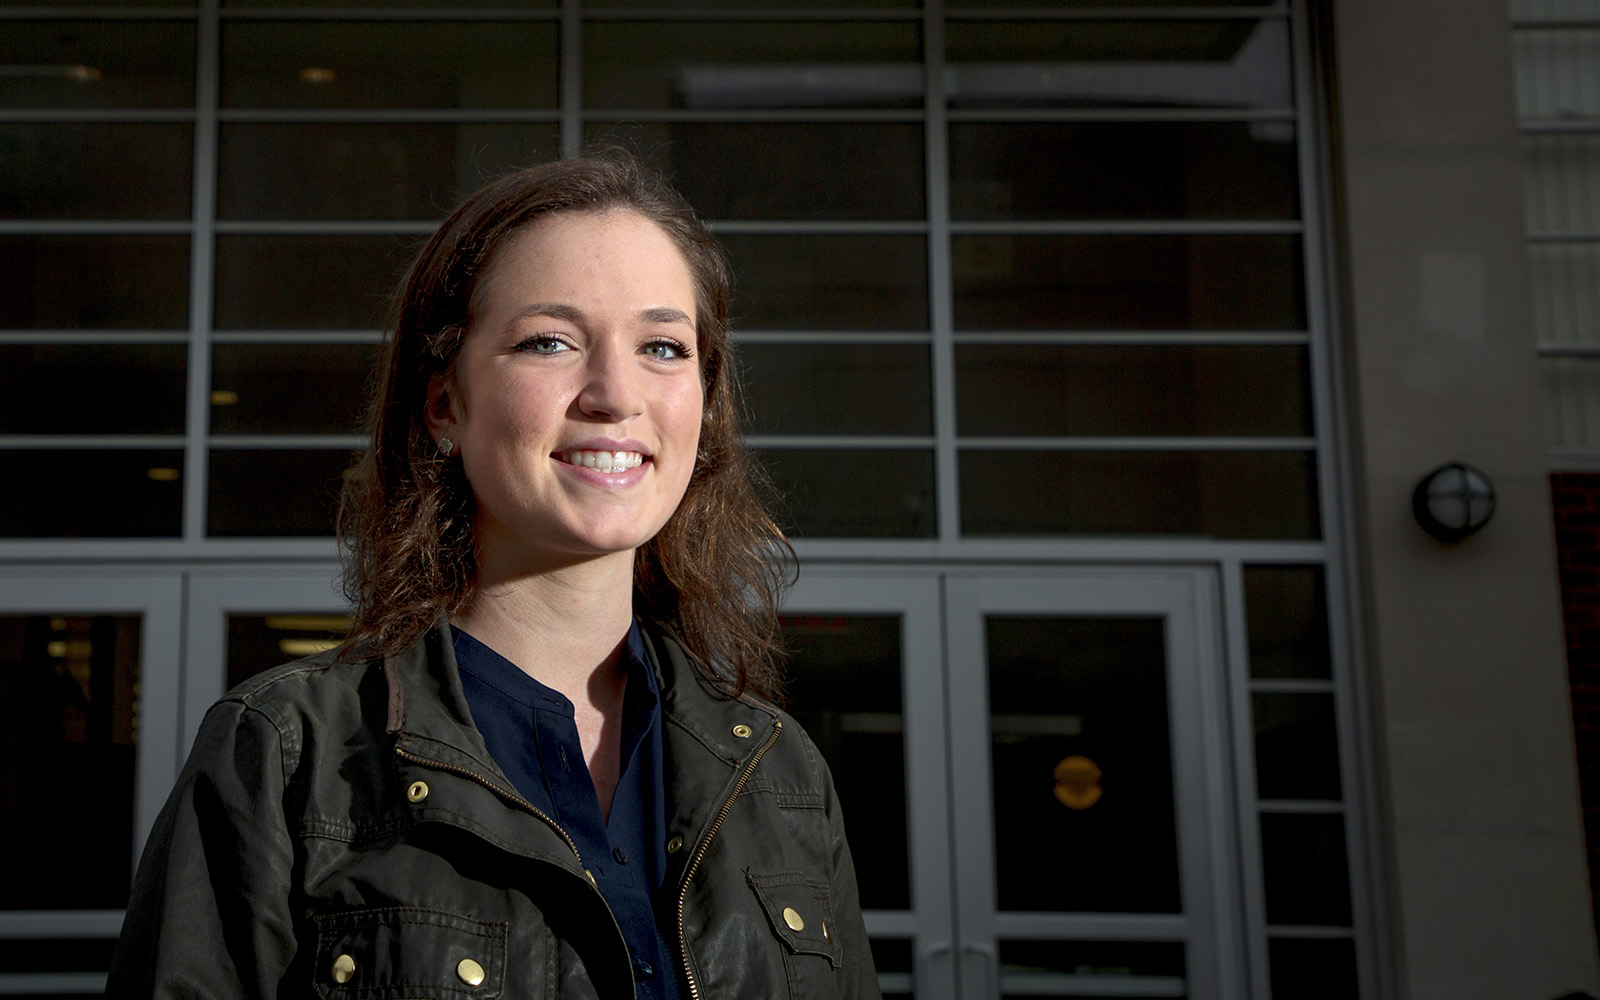 Lindsey Gilson, a senior studying Management and Engineering for Manufacturing, was awarded Intern of the Year by the American Society of Engineering Education. Gilson, a native of Trumbull, Conn., interned with Unilever in Minneapolis last year. Gilson will graduate this May. (UConn Foundation)